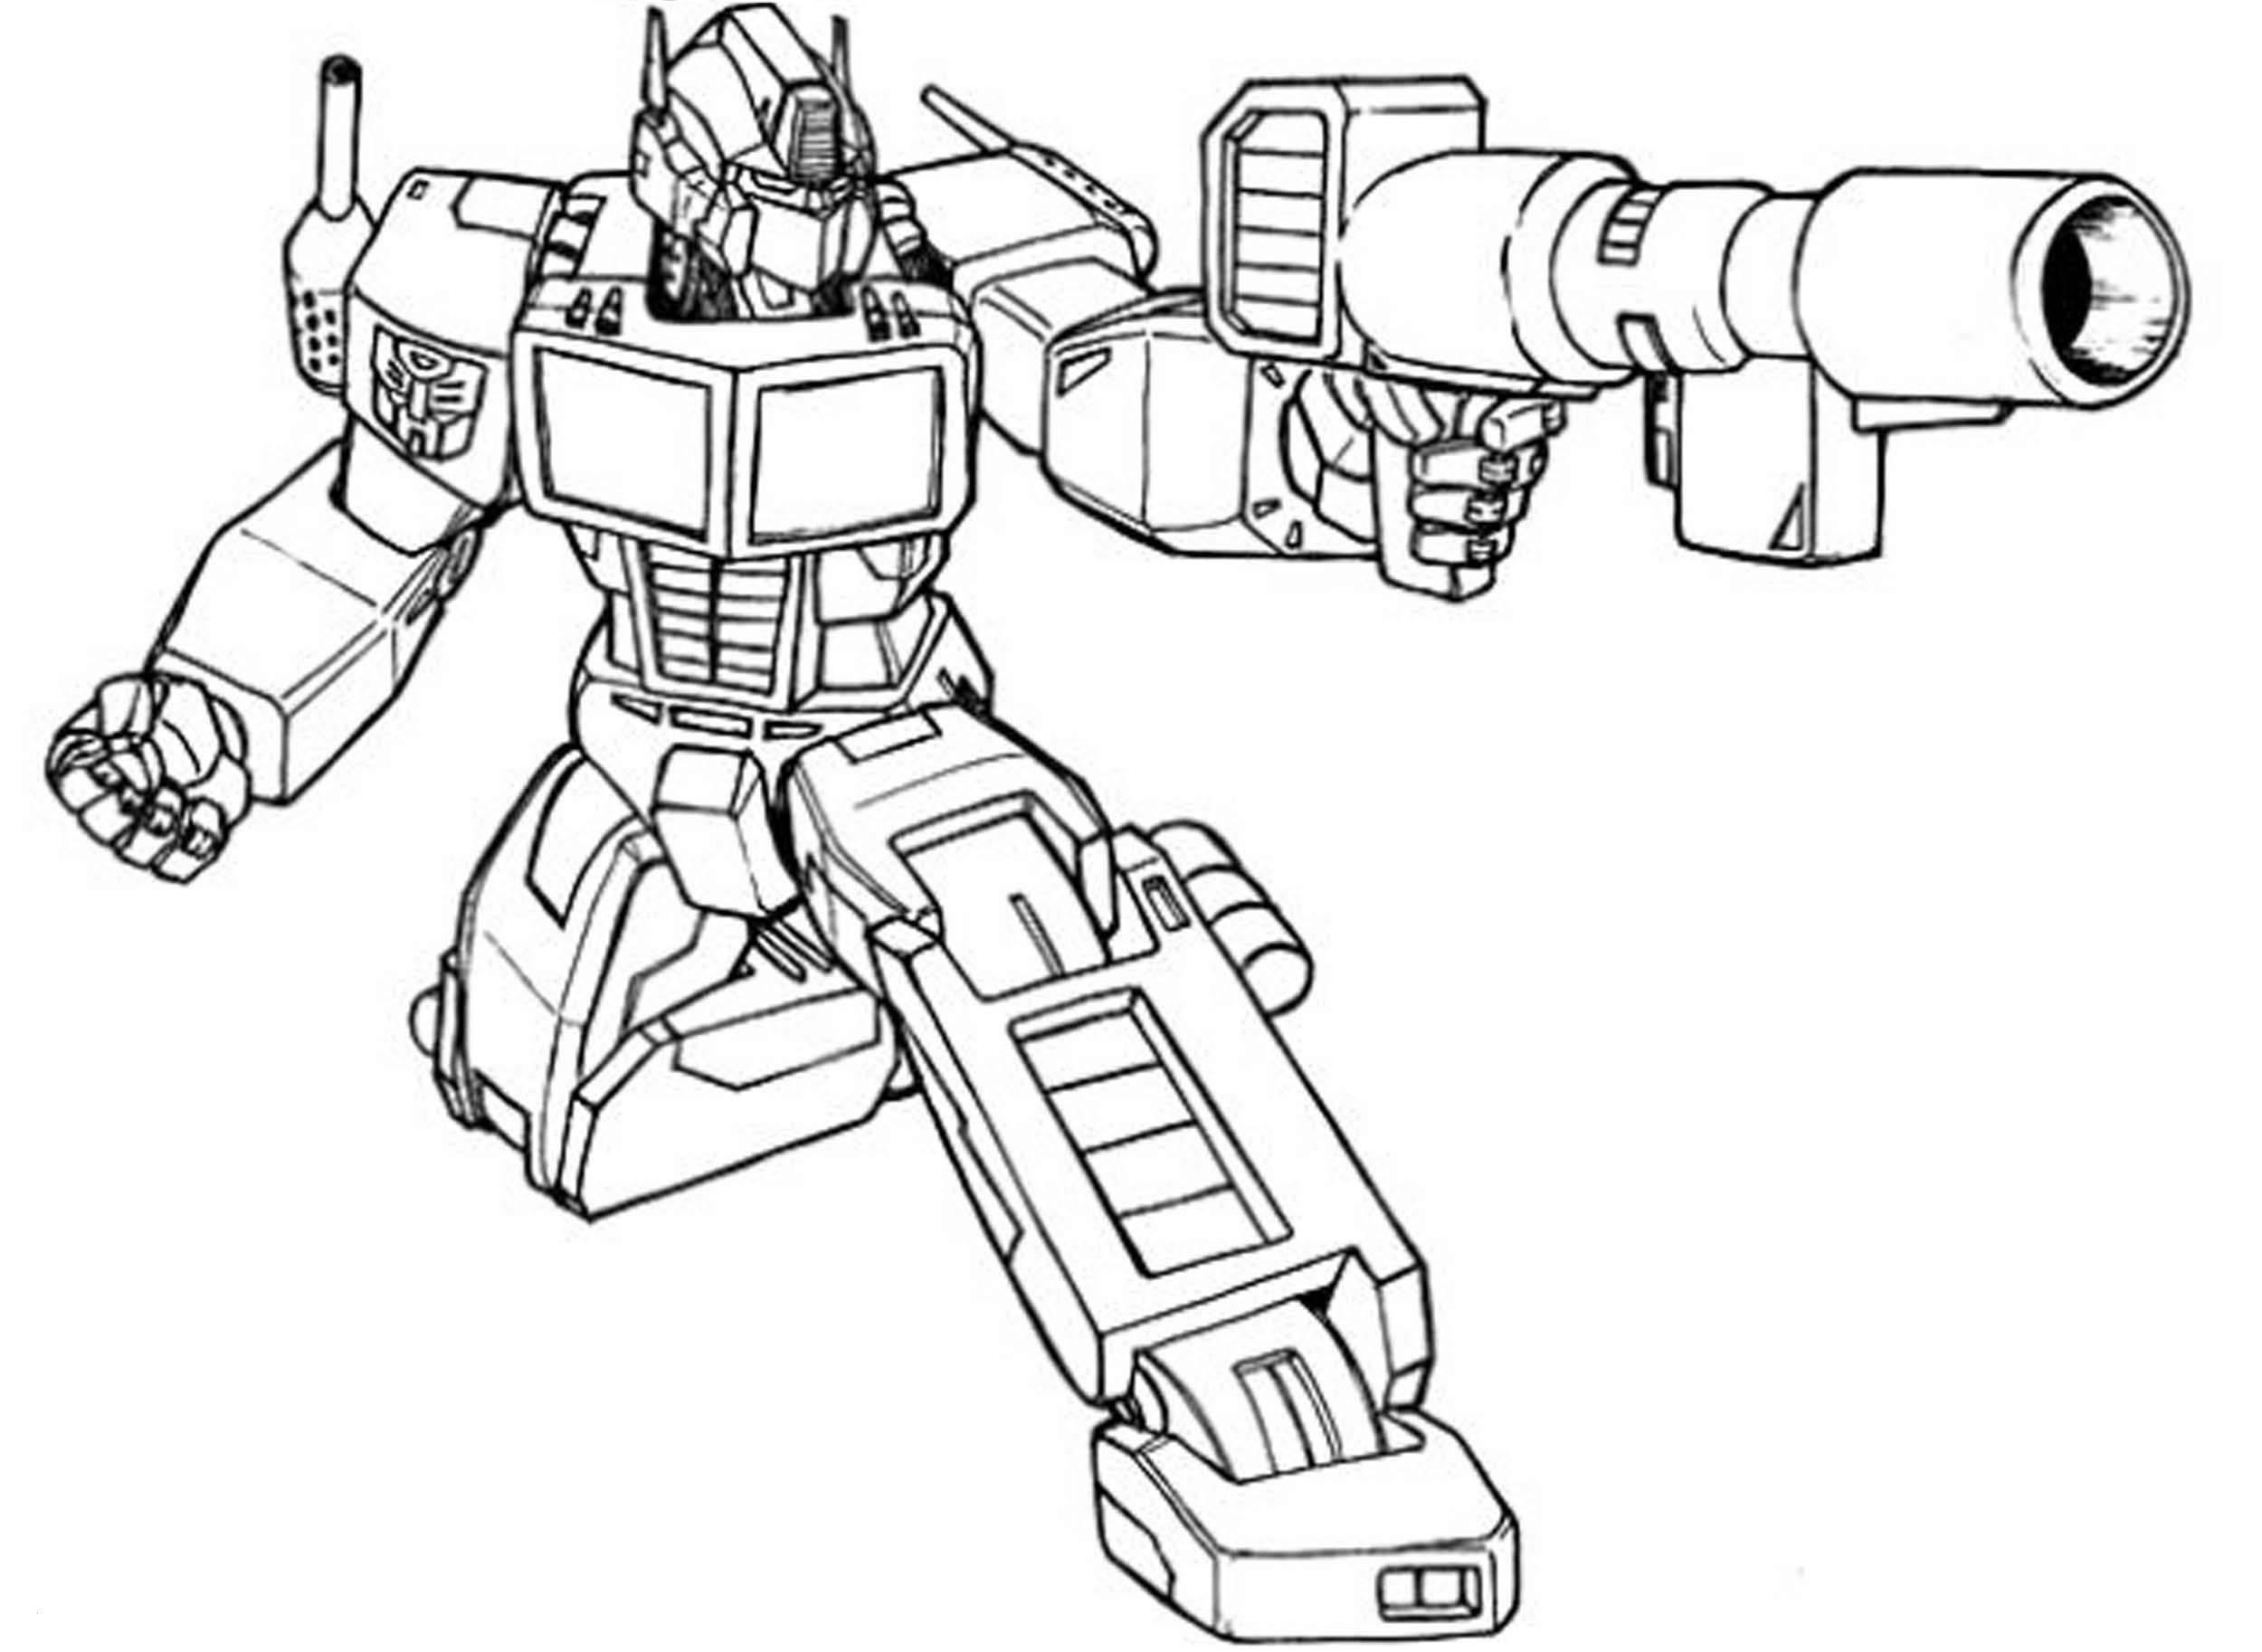 Transformers Coloring Pages - GetColoringPages.com | 1826x2500